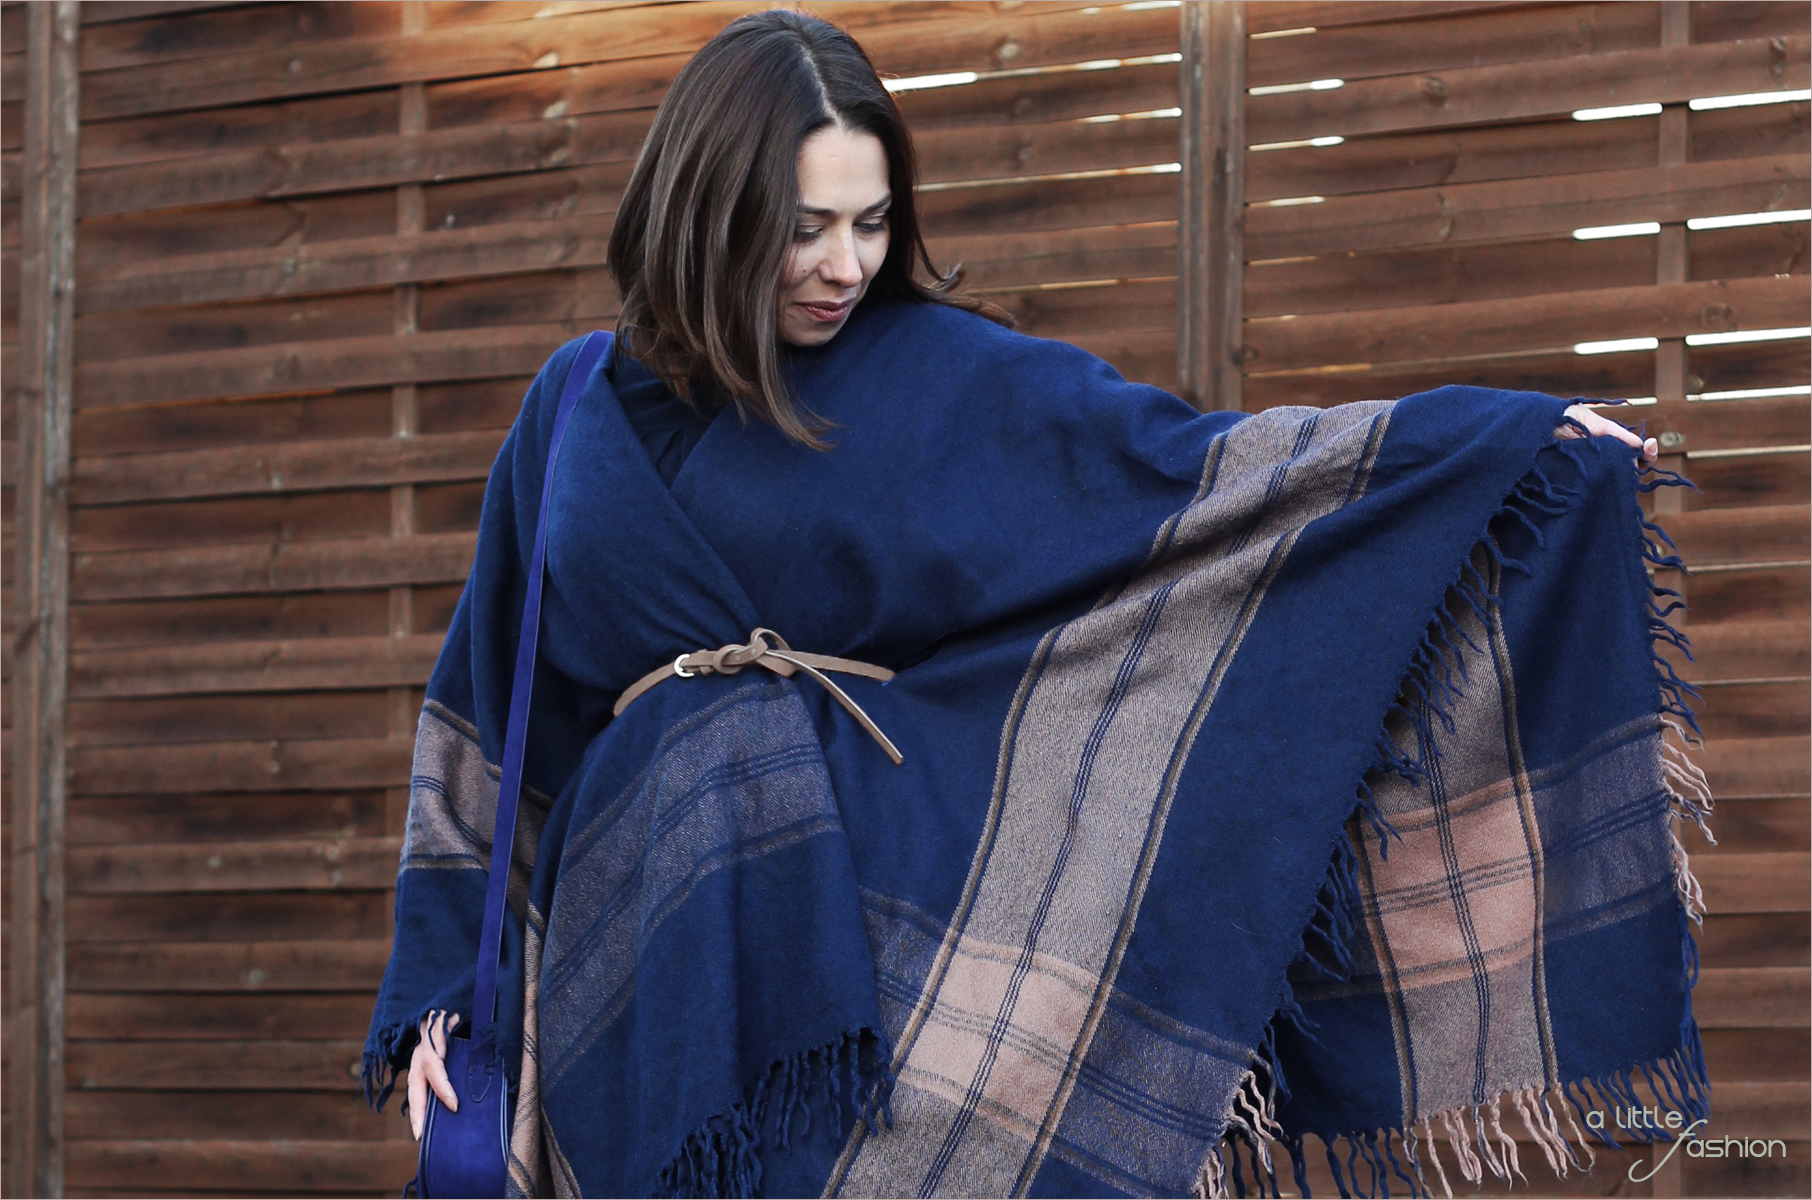 H/W2015: Poncho  |  A Little Fashion  |  https://www.filizity.com/fashion/hw2015-cape-poncho